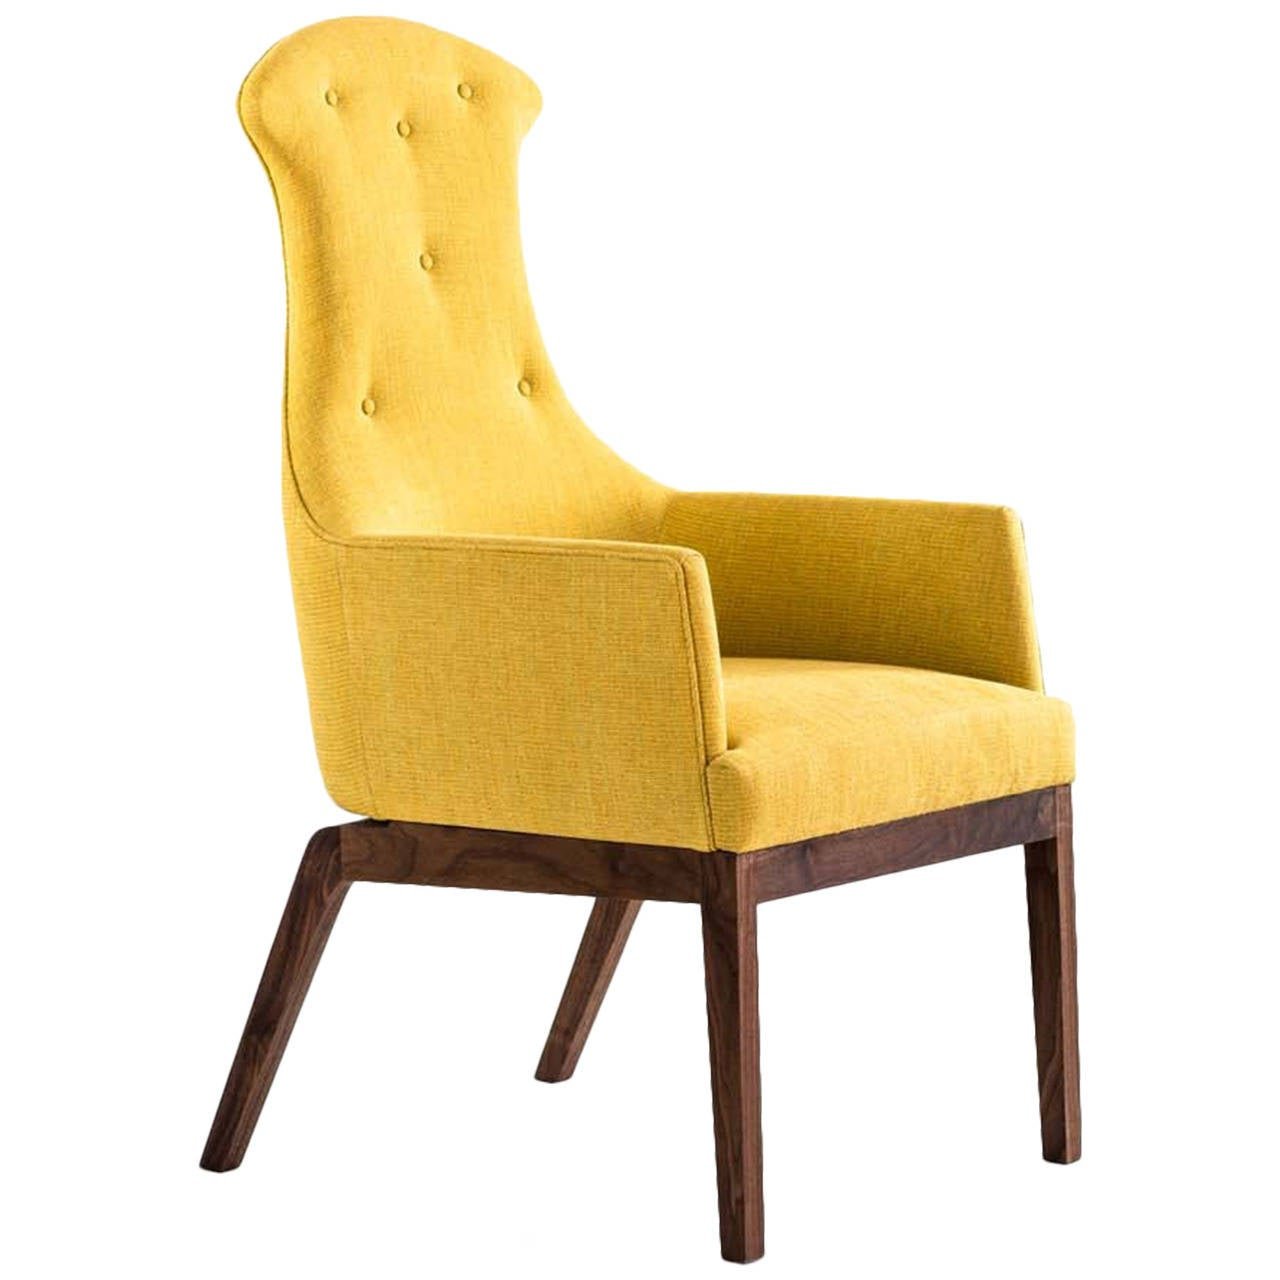 Evander Chair or Armchair in Yellow Cotton Linen Weave with a Walnut Base For Sale